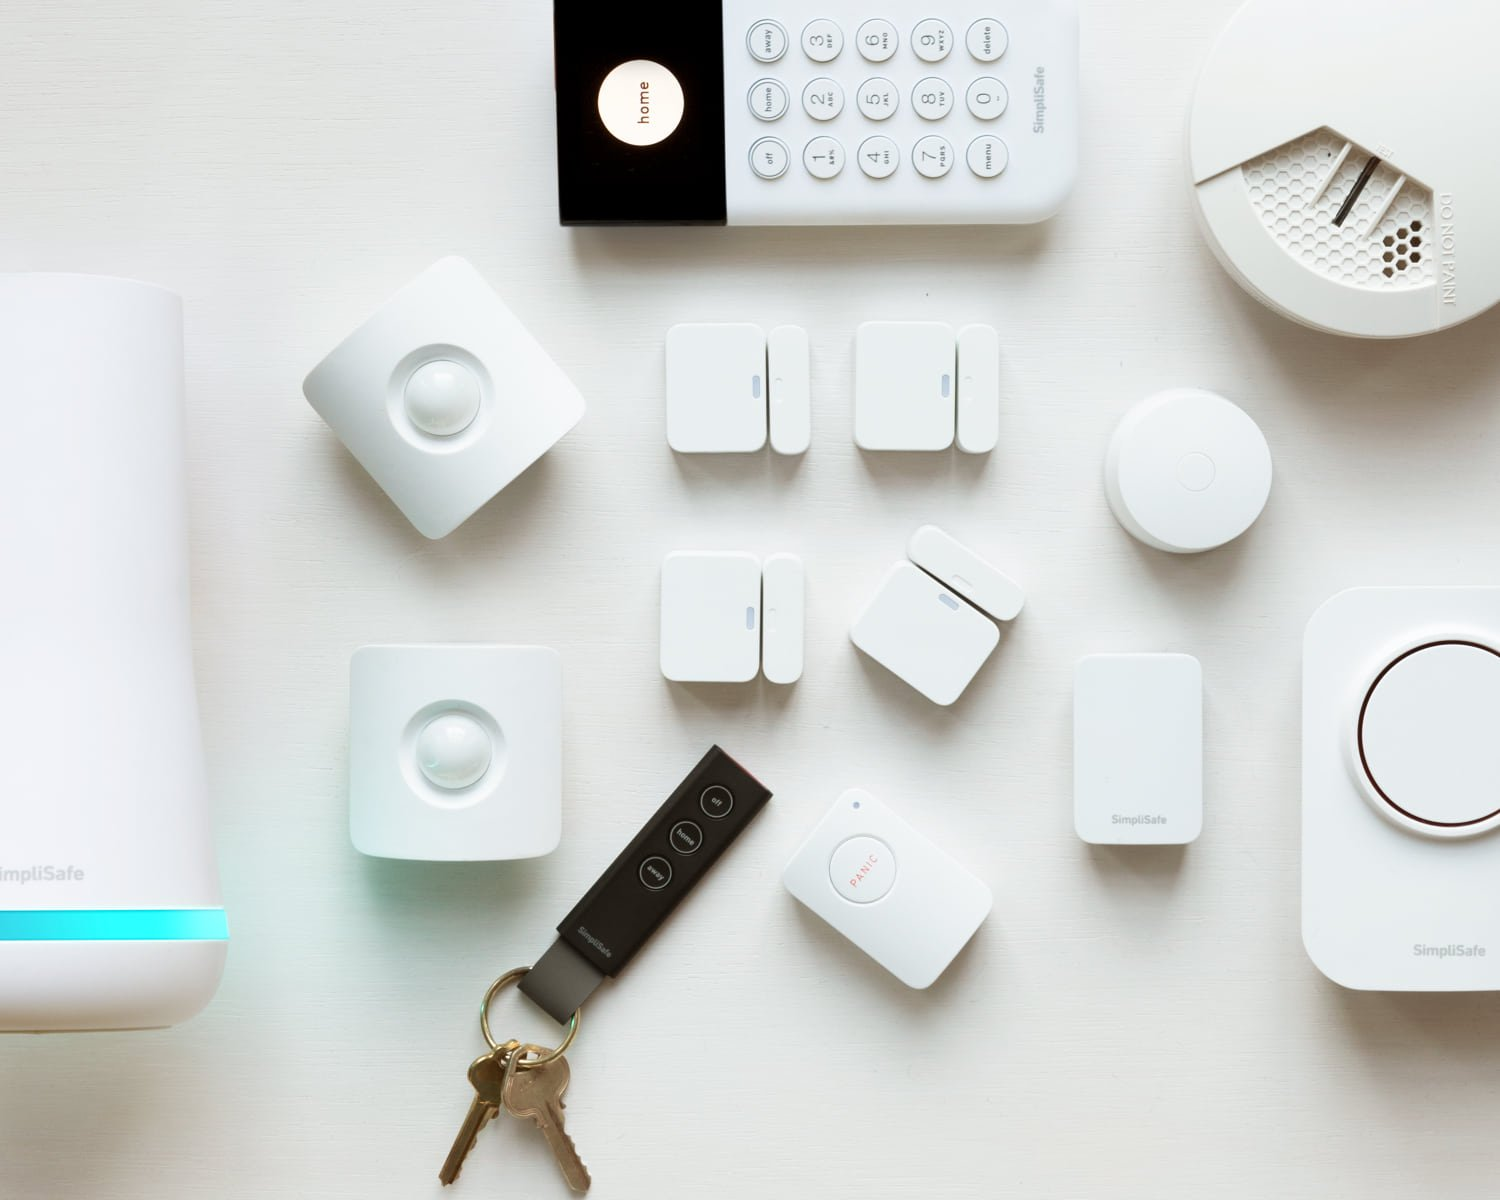 Amazon.com: SimpliSafe Wireless Home Security System The ...